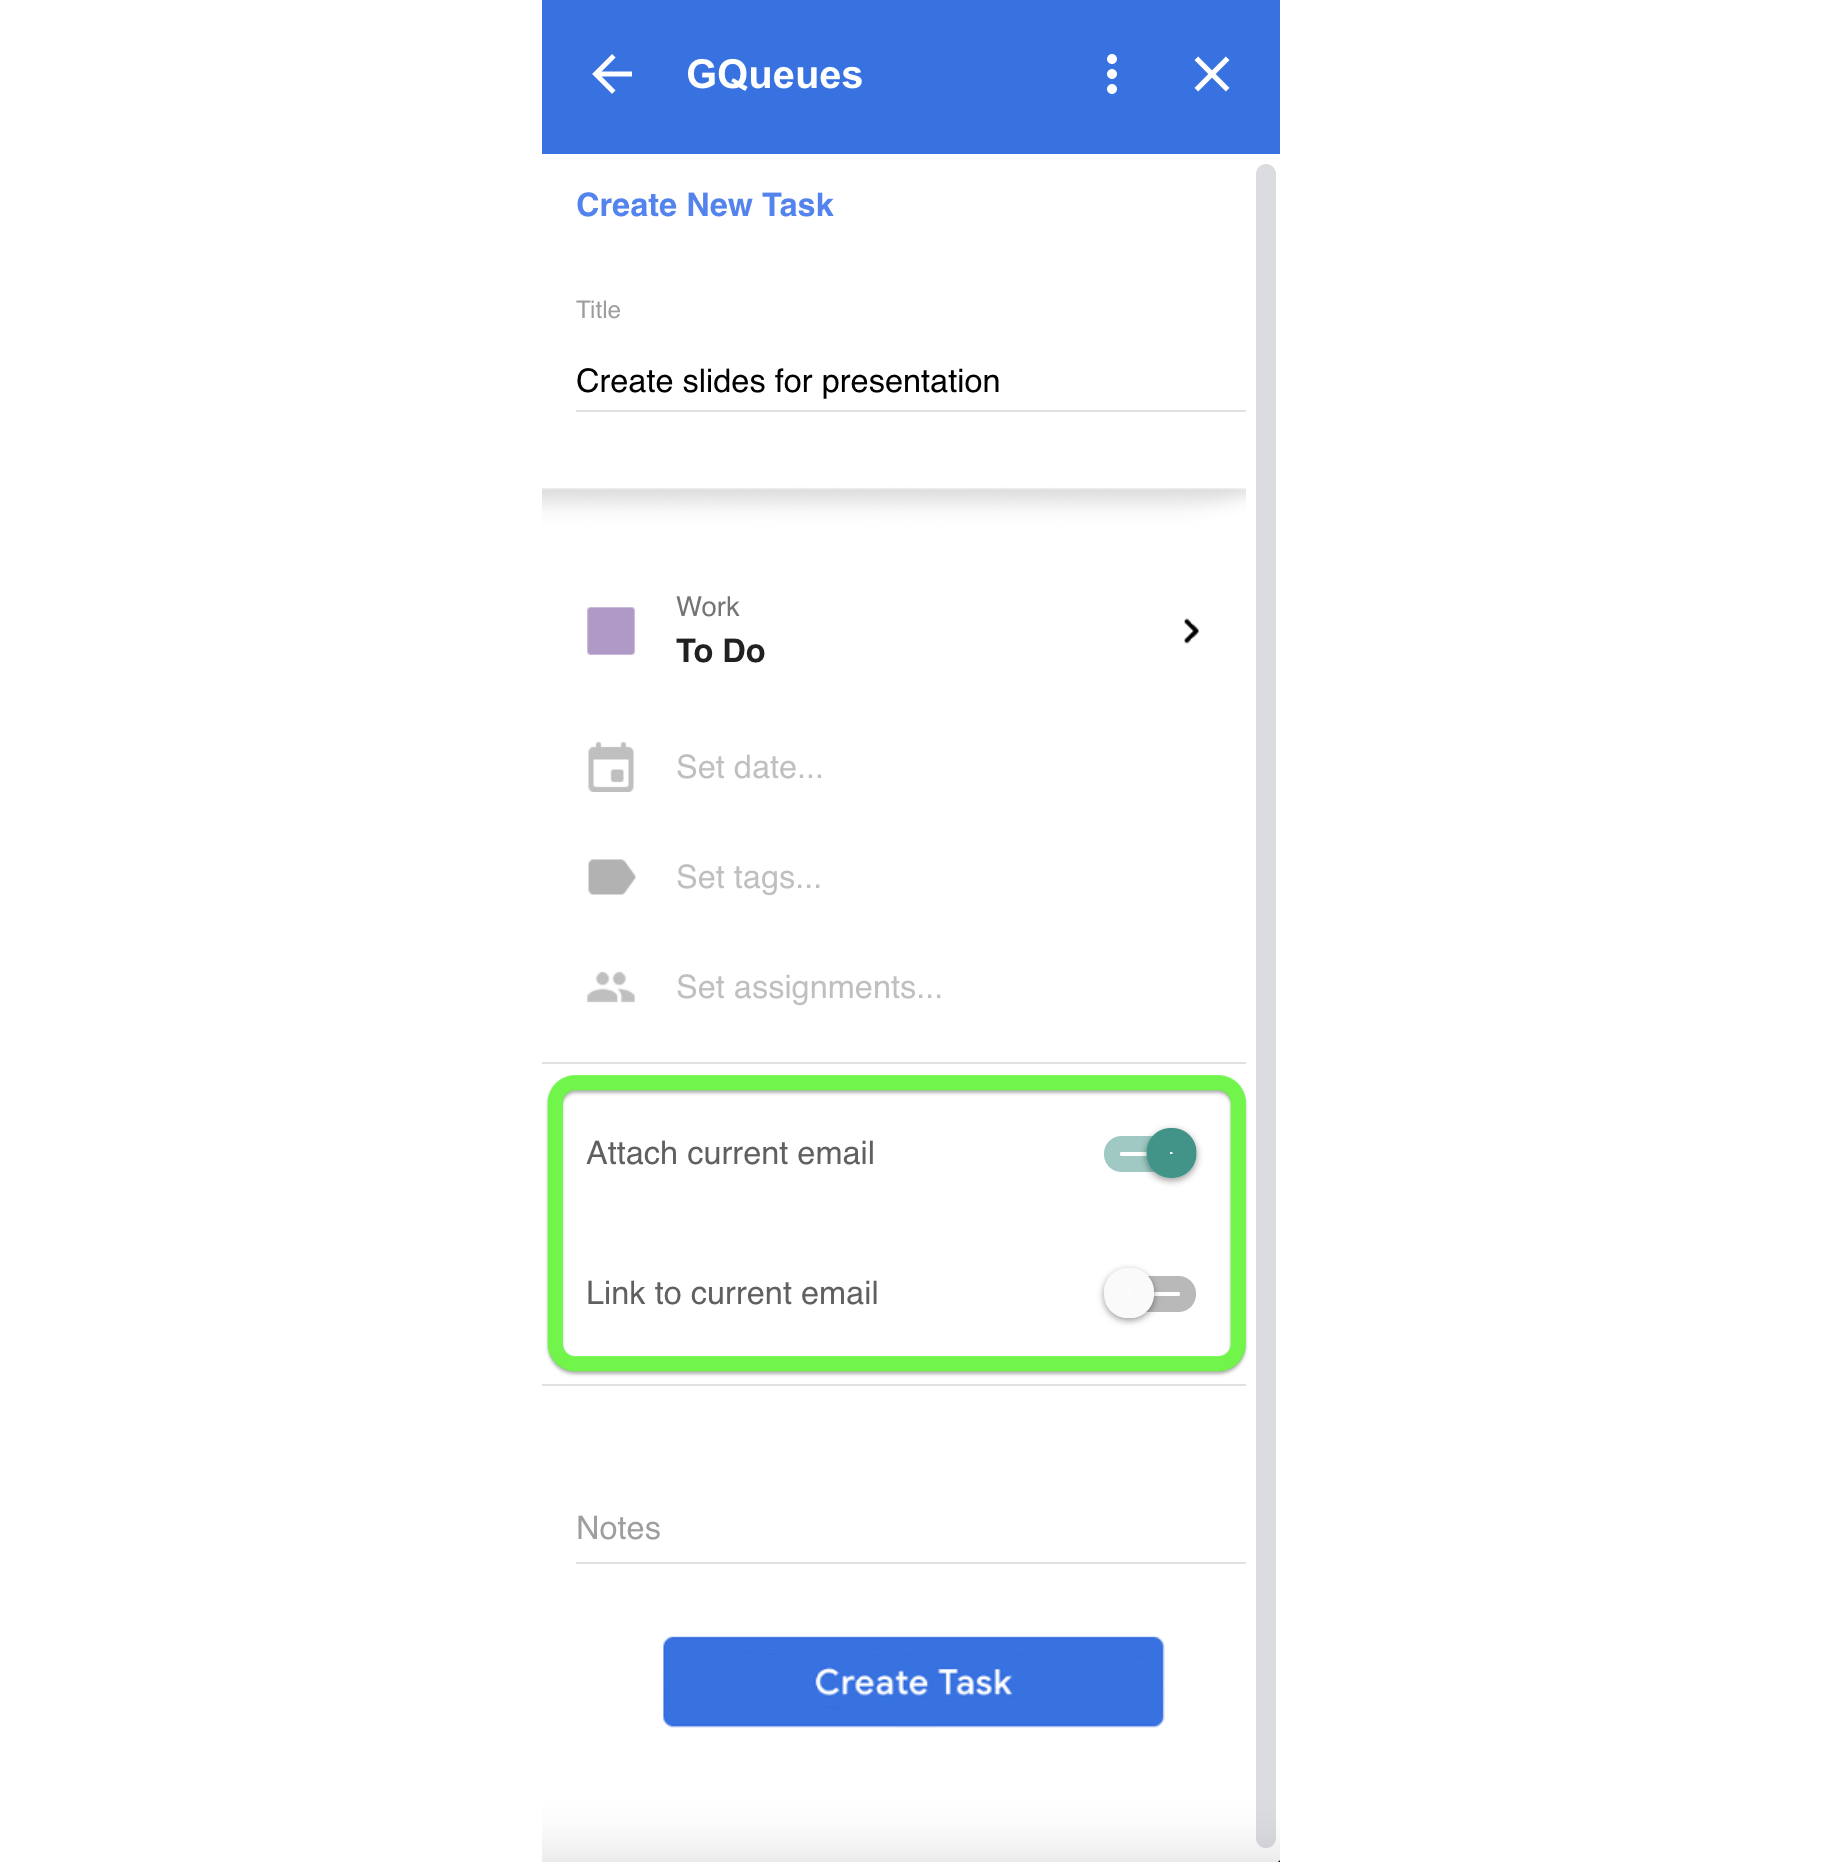 Attach or link current email to the task from within Gmail